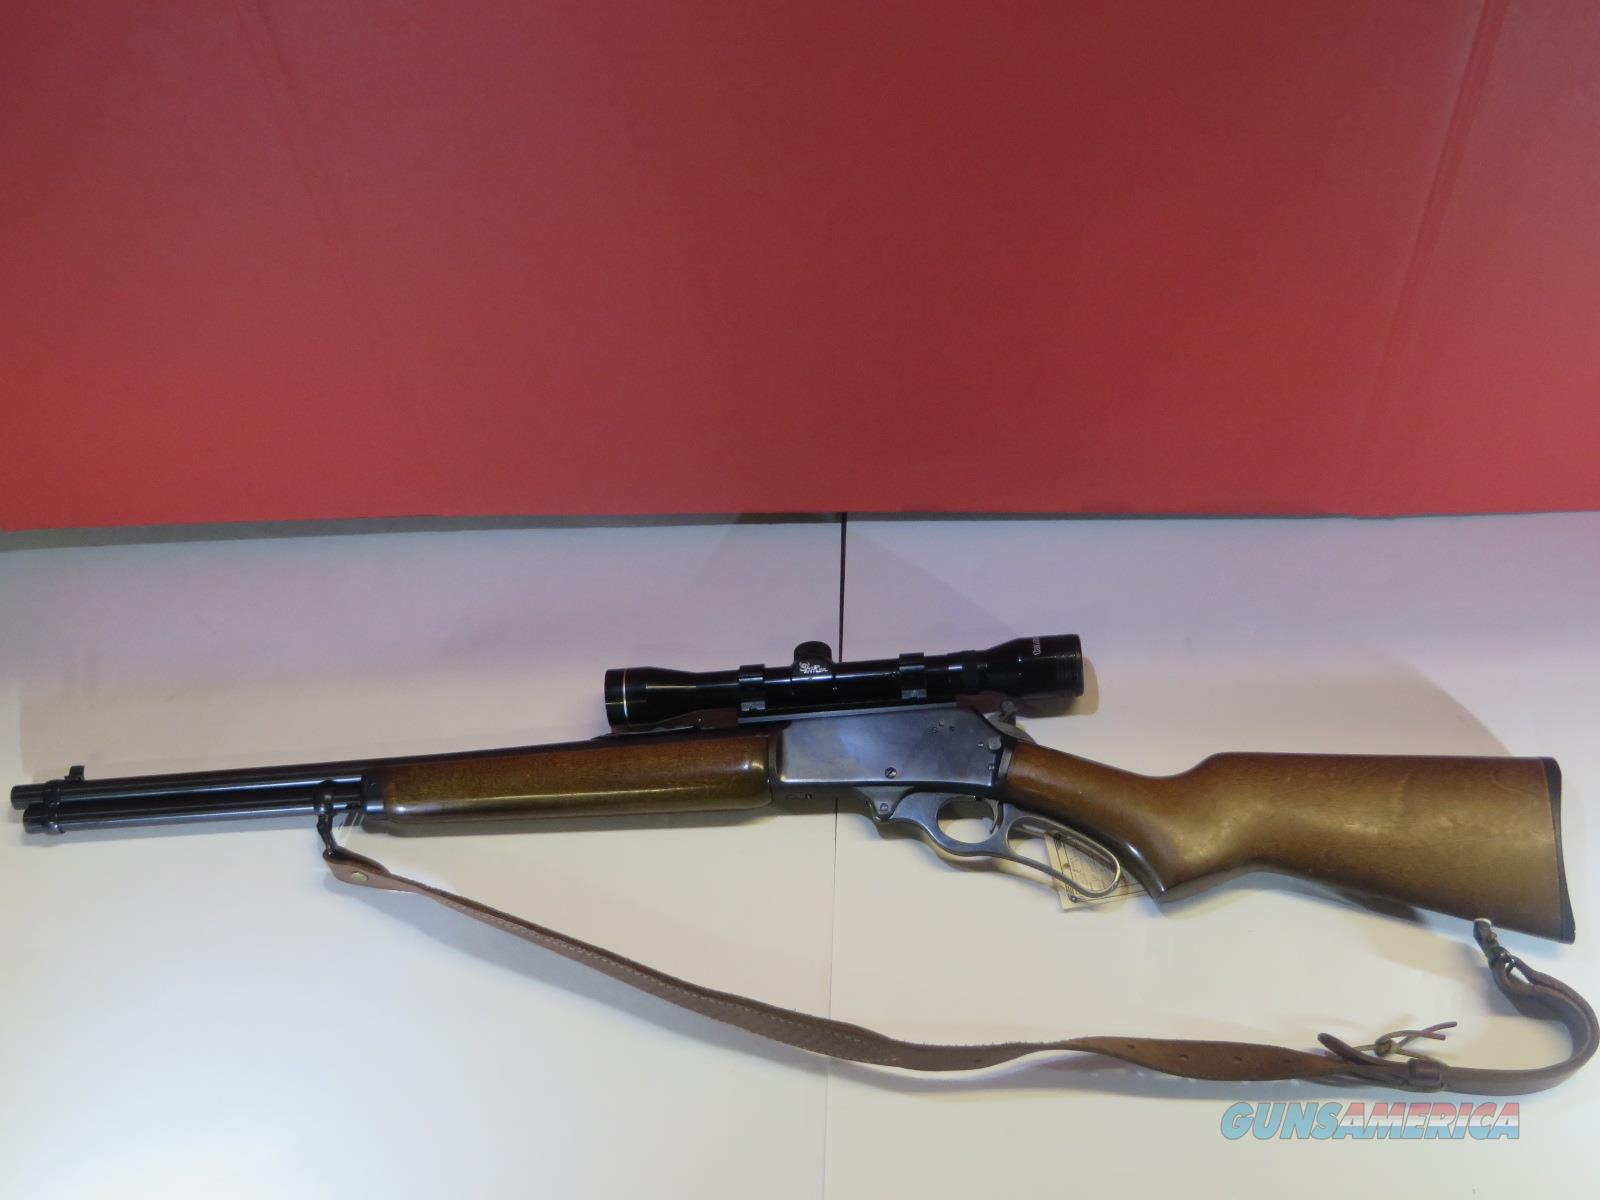 MARLIN 30AS 30-30WIN *MICRO GROOVE BARREL*  Guns > Rifles > Marlin Rifles > Modern > Lever Action